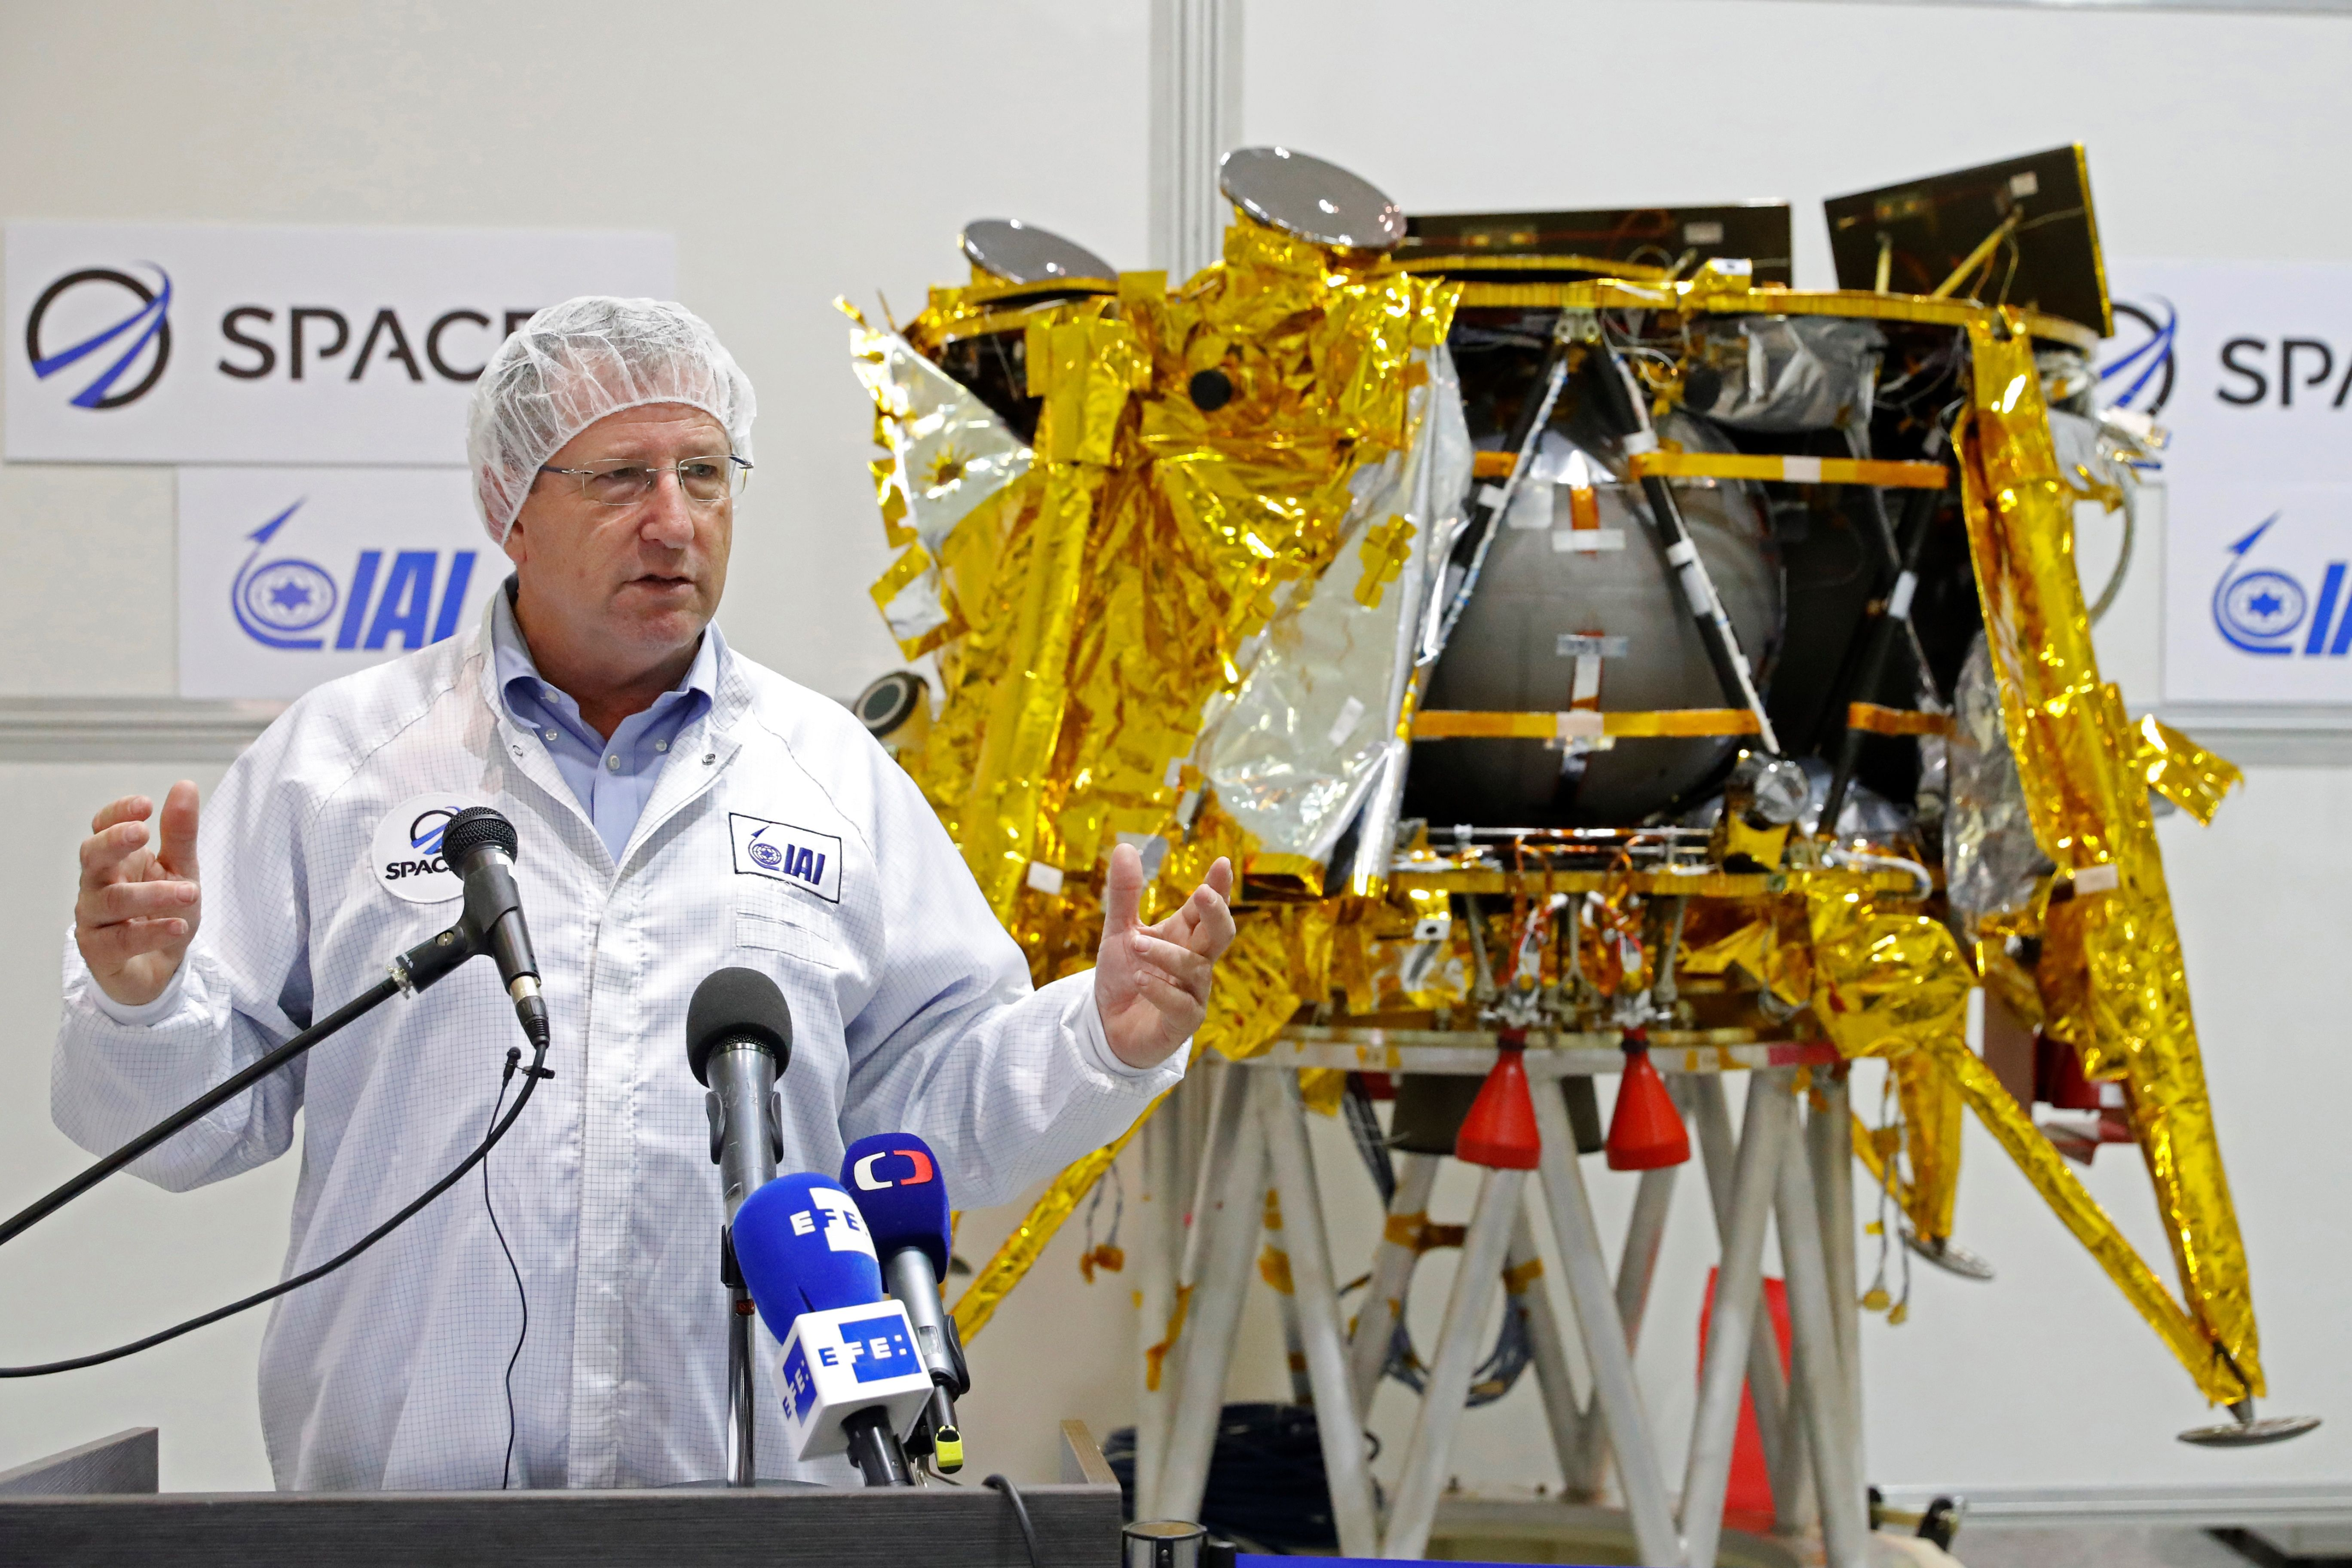 Israeli Aerospace Industries director of Space division Opher Doron speaks in front a a spacecraft weighing some 585 kilogrammes (1,300 pounds) during a presentation by Israeli nonprofit SpaceIL (JACK GUEZ/AFP/Getty Images)